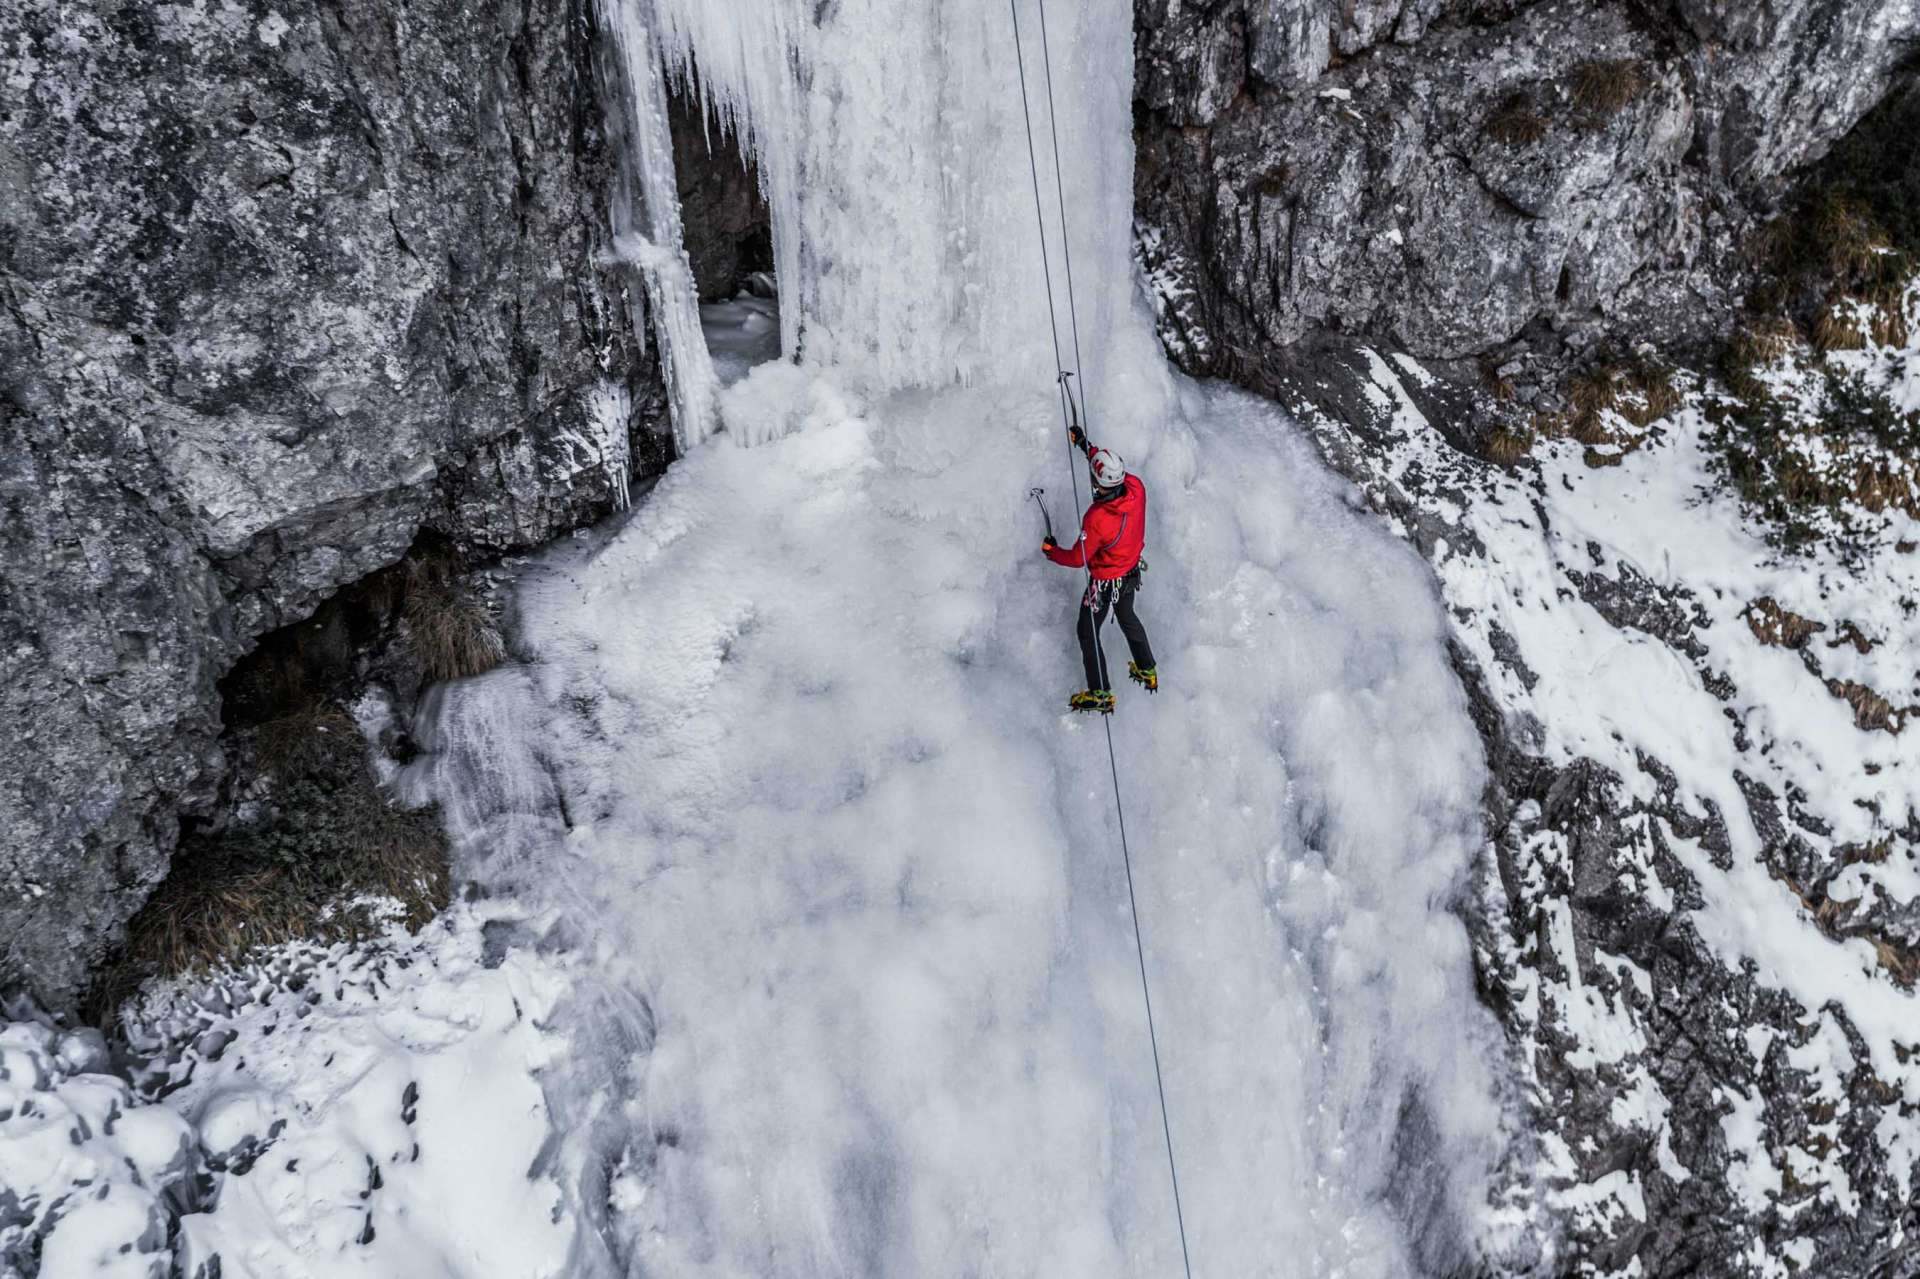 Ice Climbing Iced Waterfall Cascata Cambrembo Foppolo 2